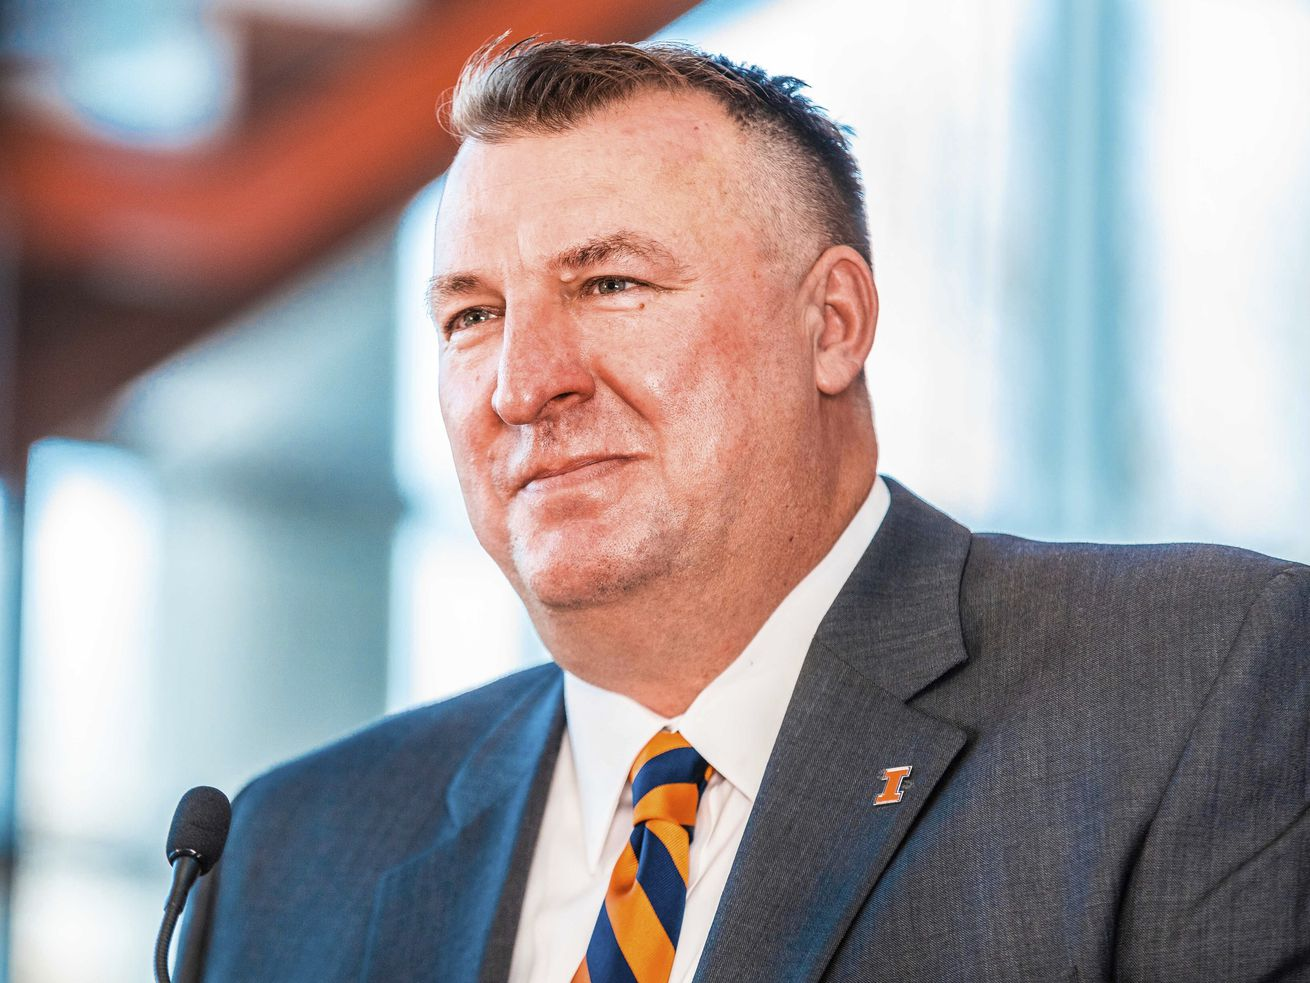 Incoming Illinois football coach Bret Bielema speaks at a news conference at Smith Football Center in Champaign.